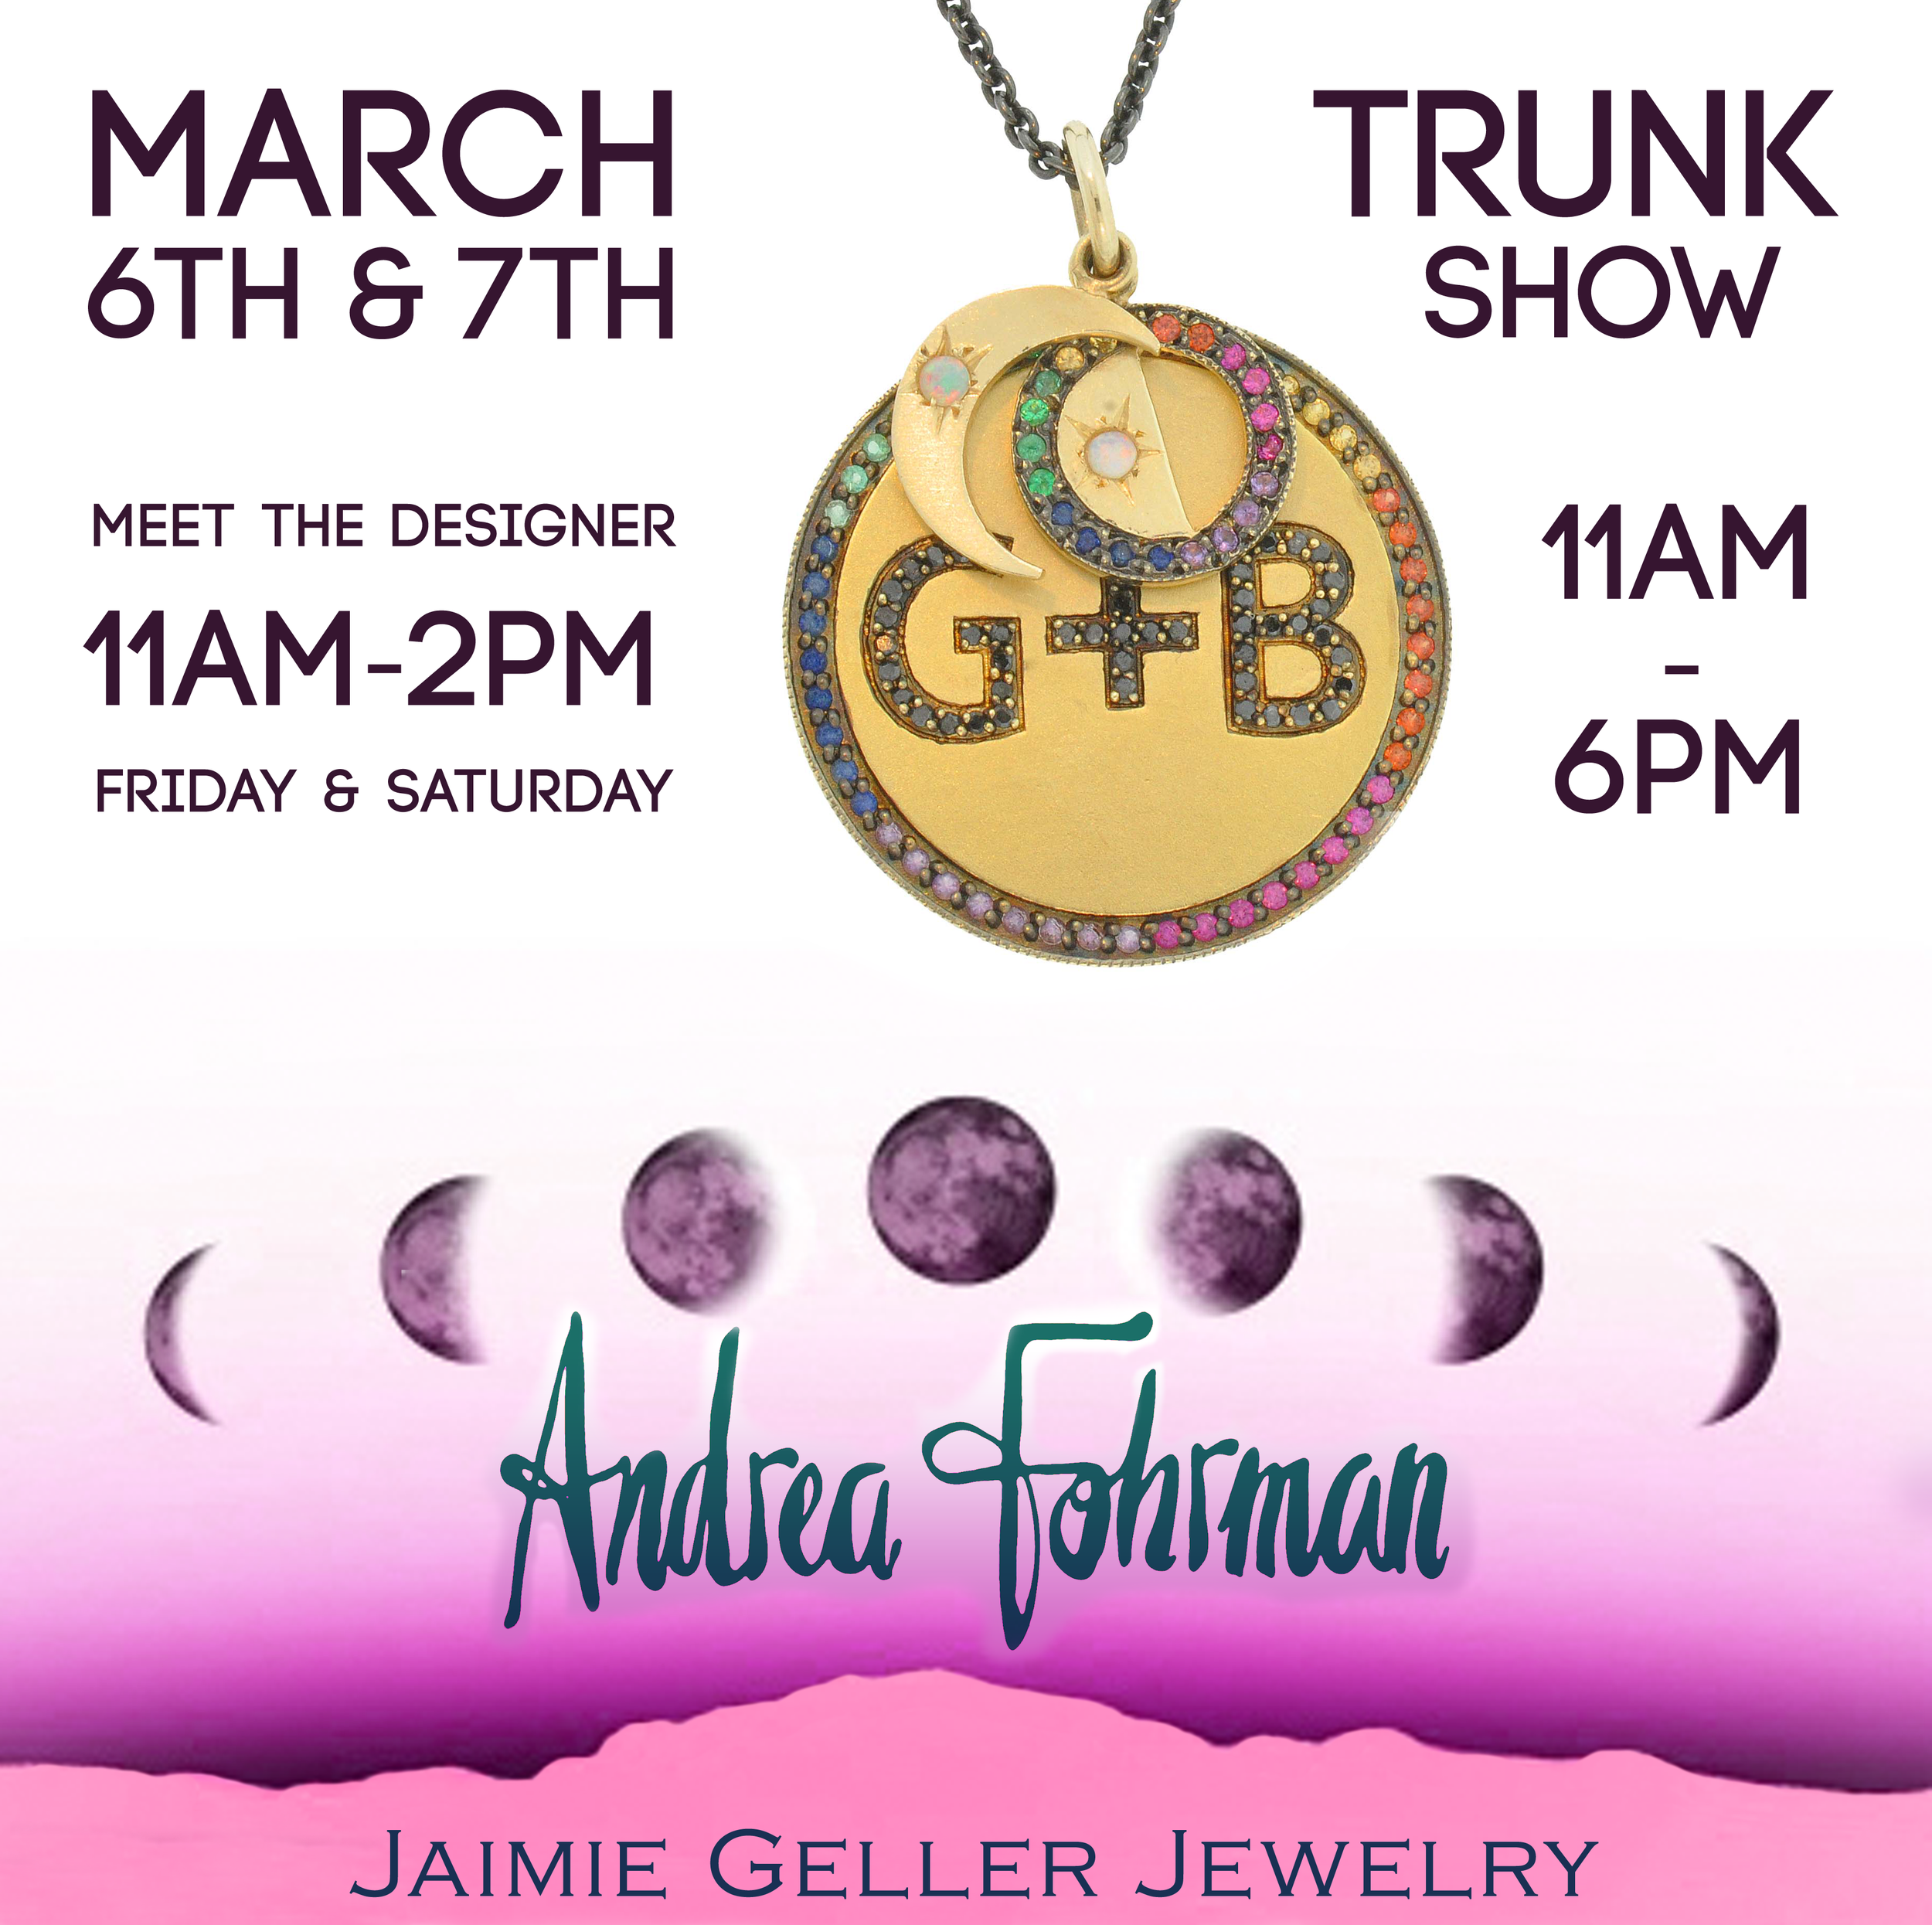 Andrea Fohrman Trunk Show at Jaimie Geller Jewelry.png